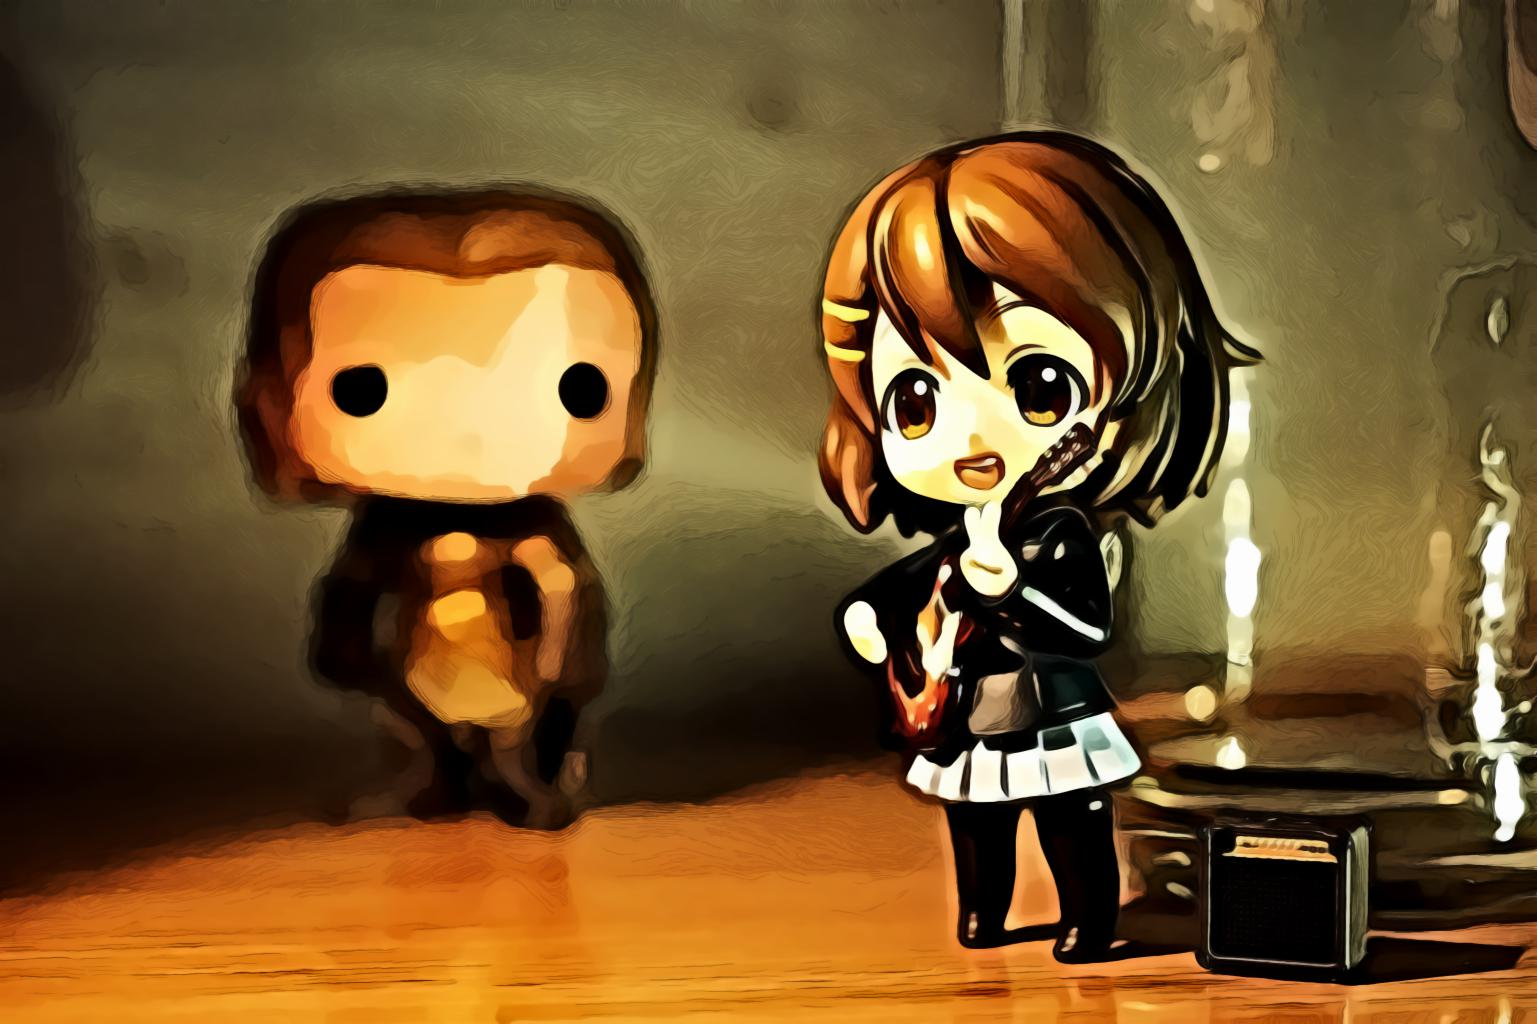 Brown Haired Female Anime Character Figure